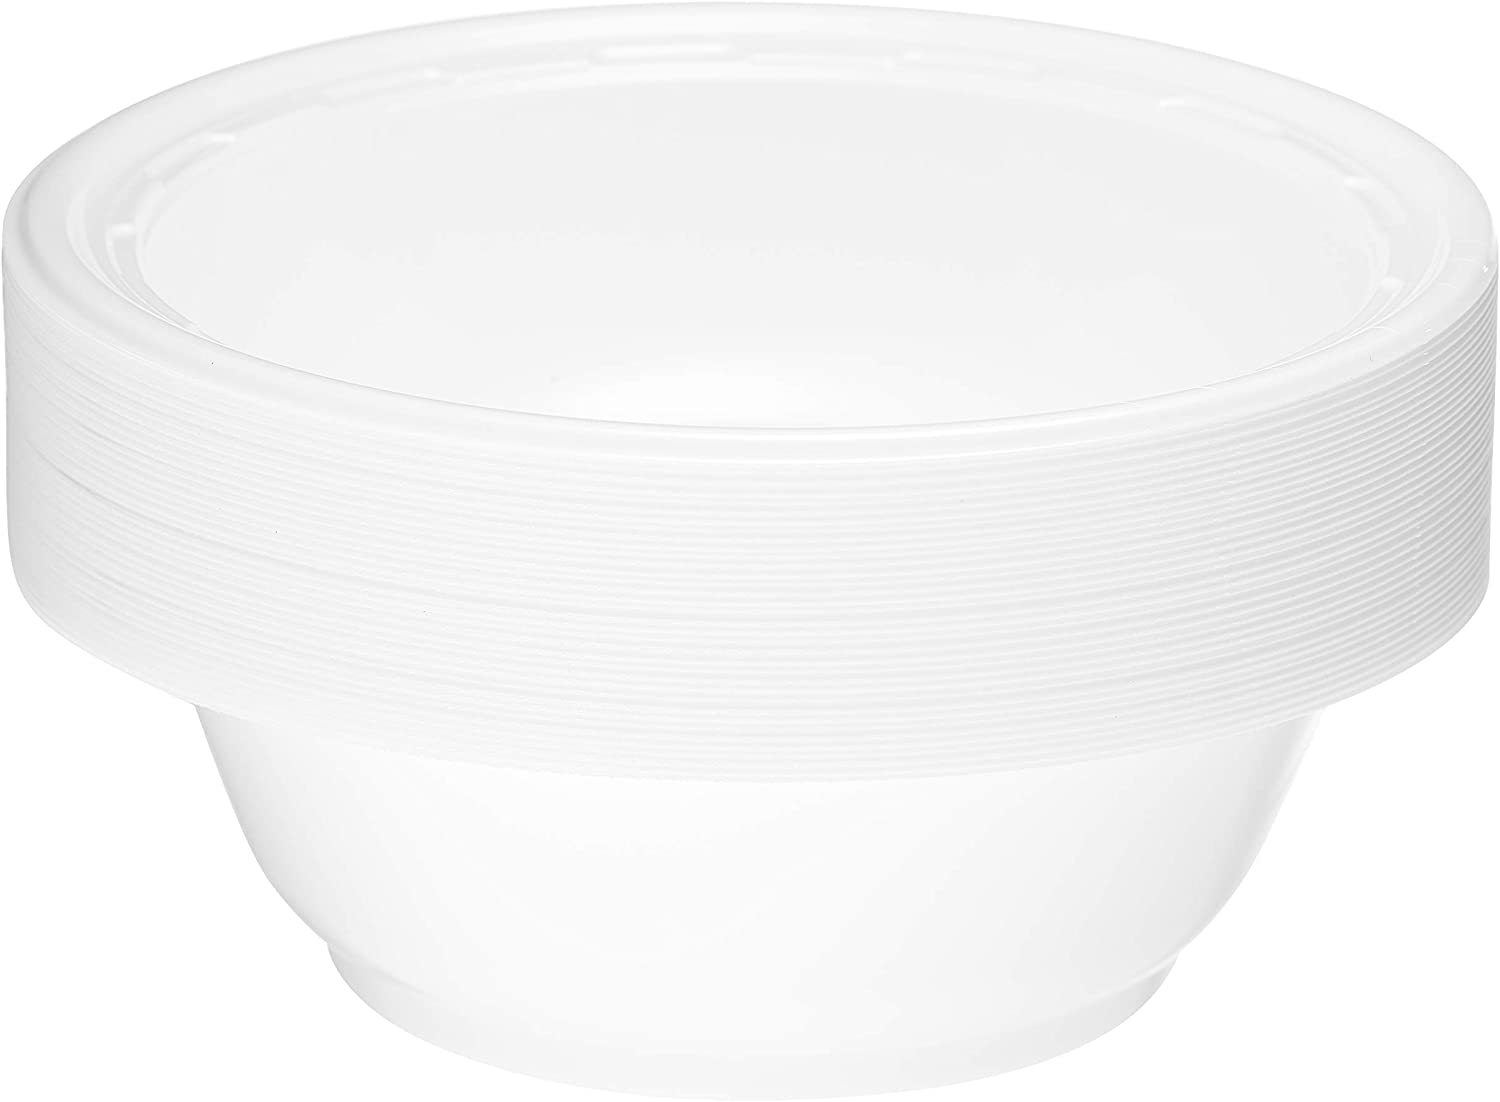 White Plastic High Impact Disposable Plastic Bowl